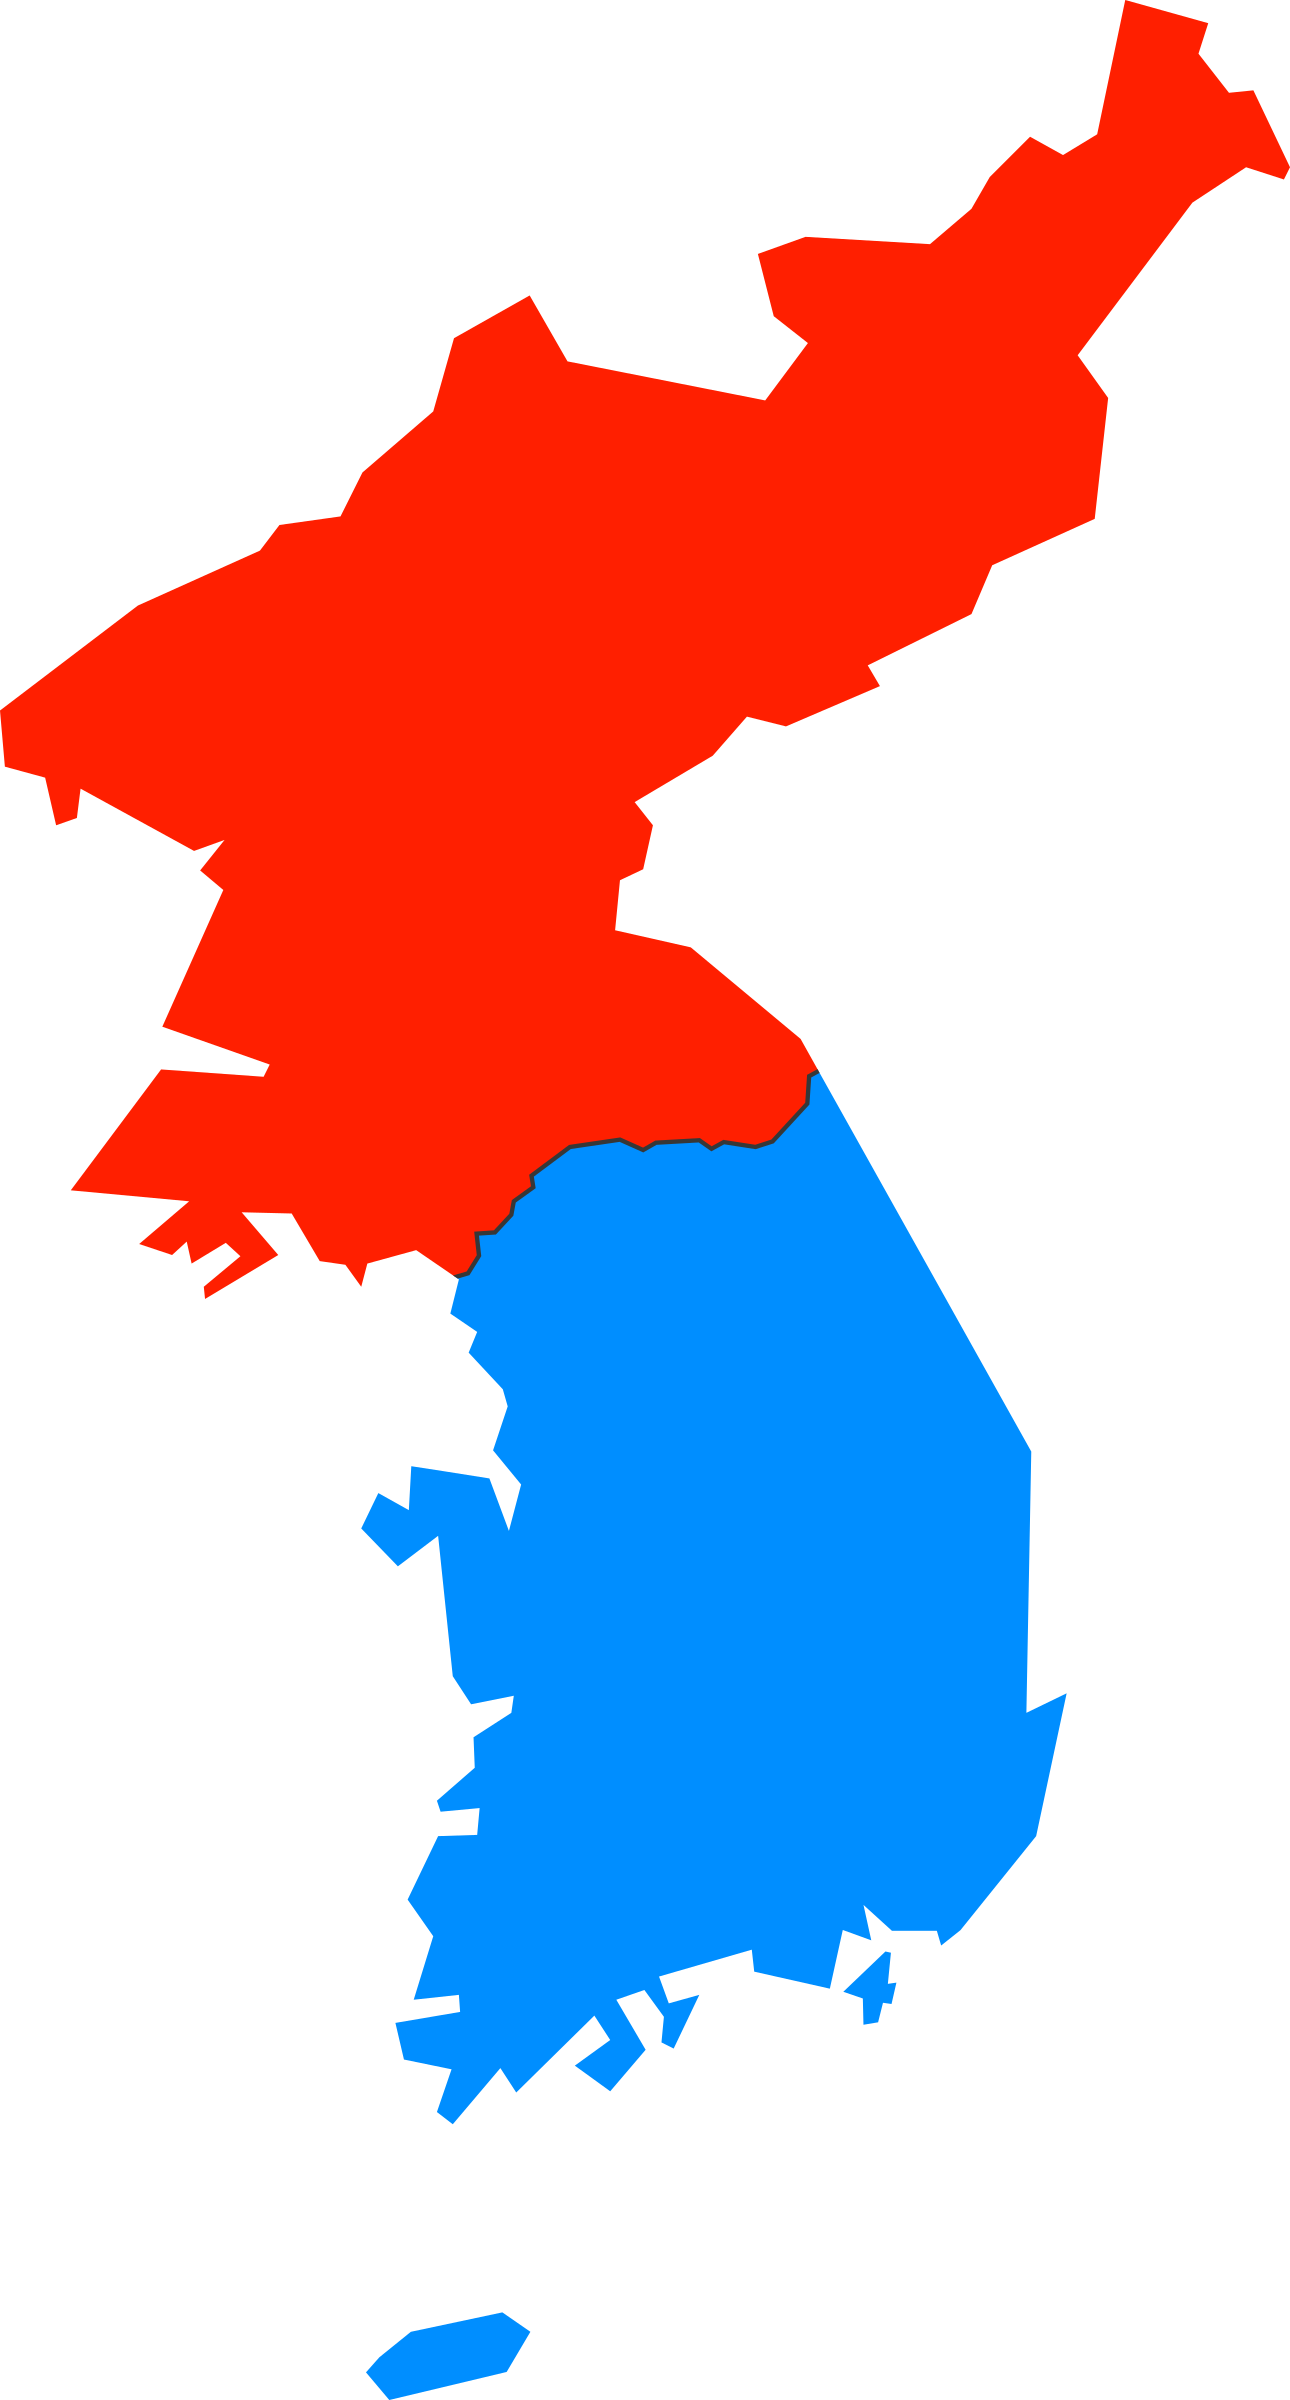 Clipart map simple. North and south korea